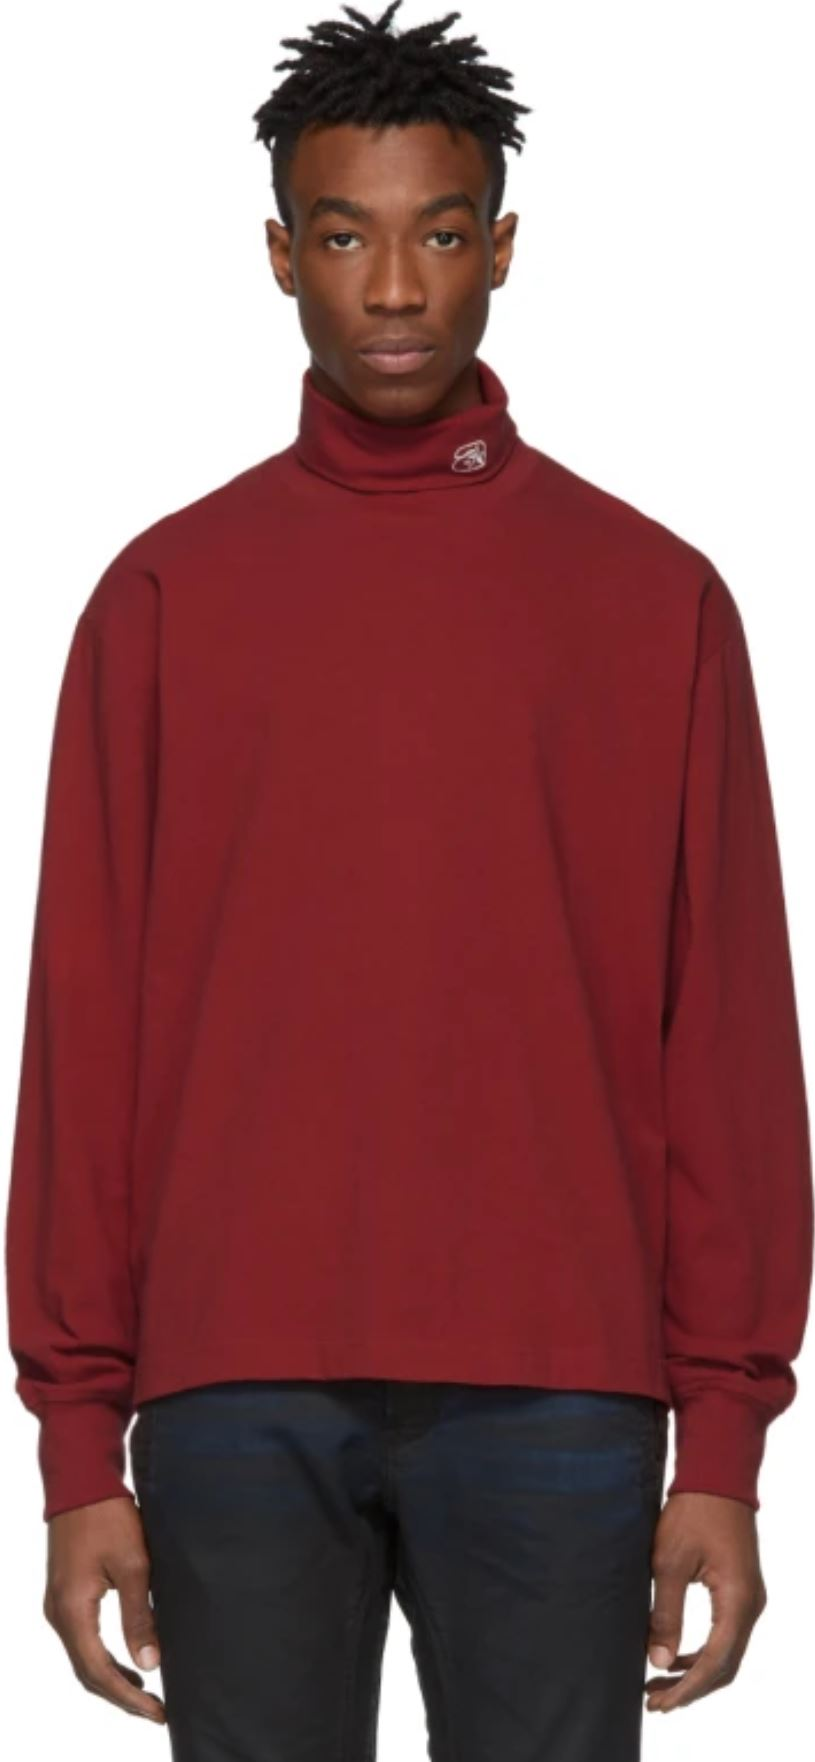 Red Turtleneck from ssense.com